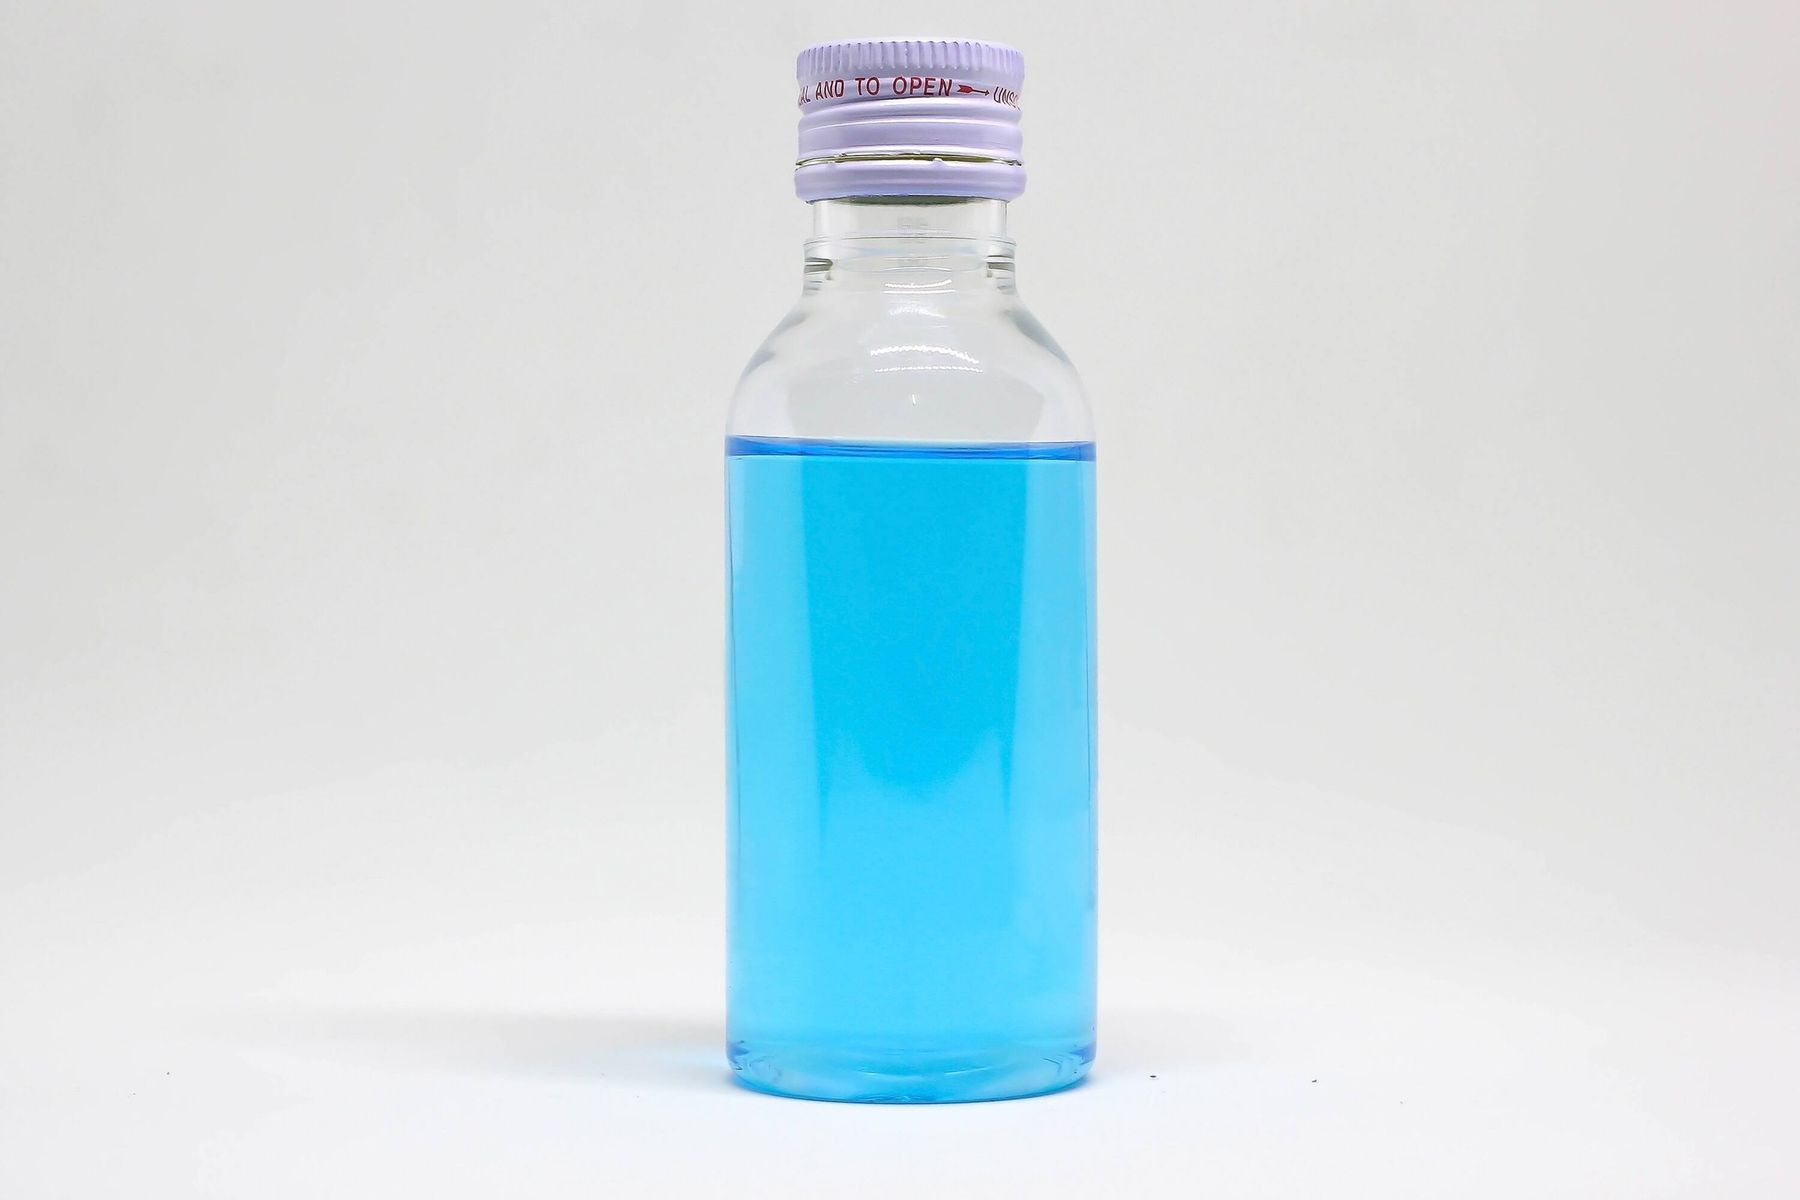 cleaning with rubbing alcohol: blue liquid in bottle